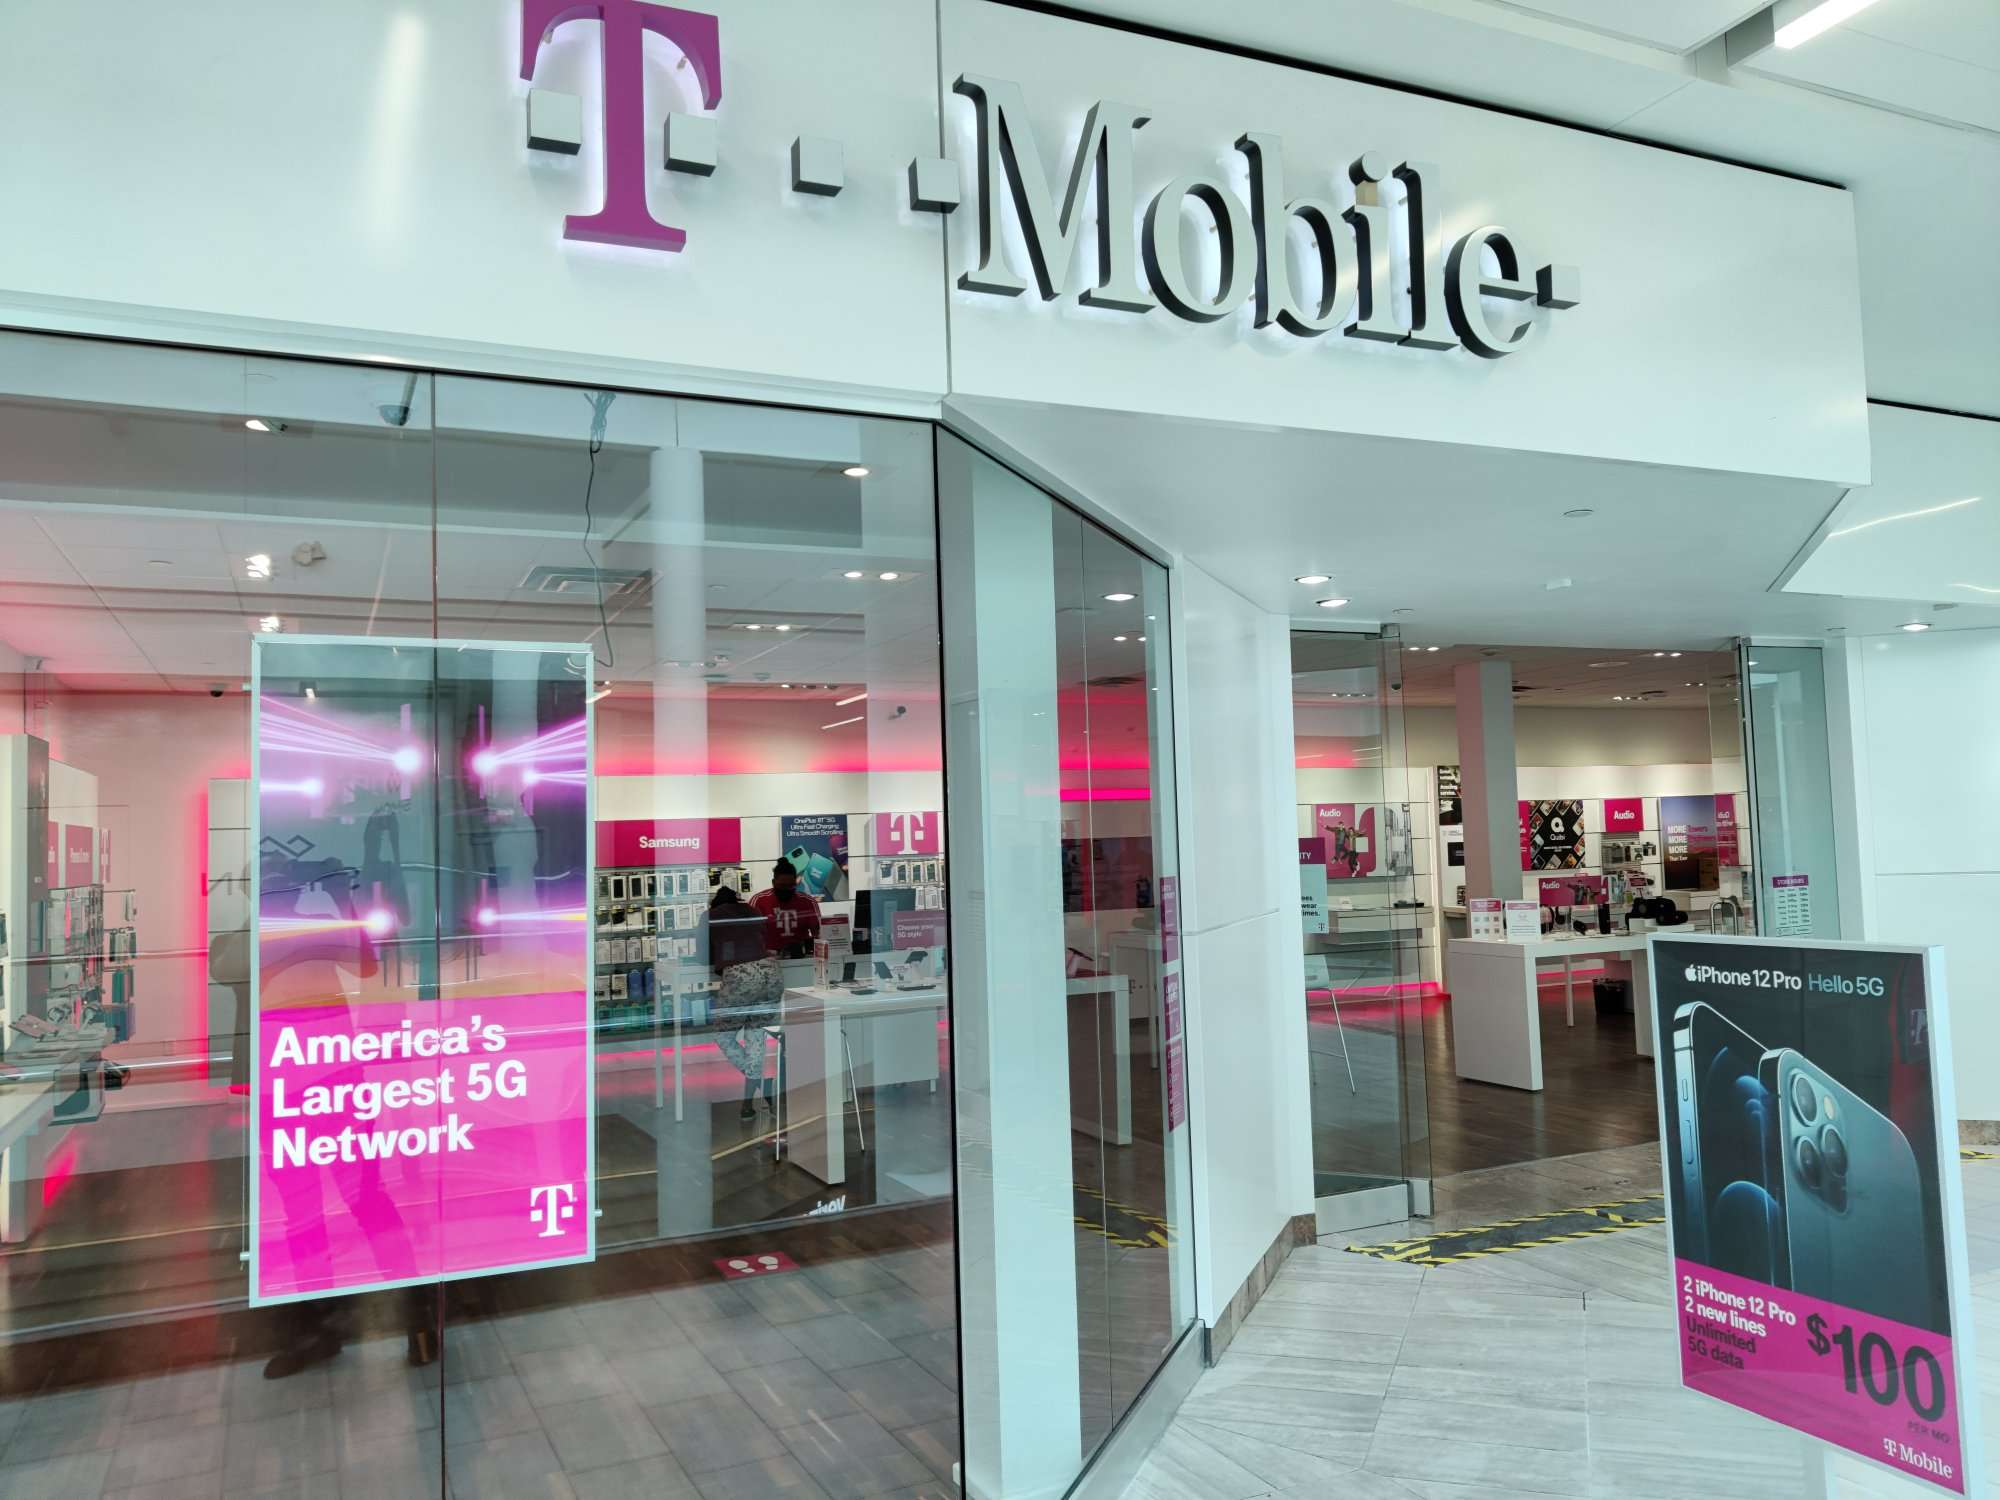 T-Mobile Store iPhone 12 Promotions